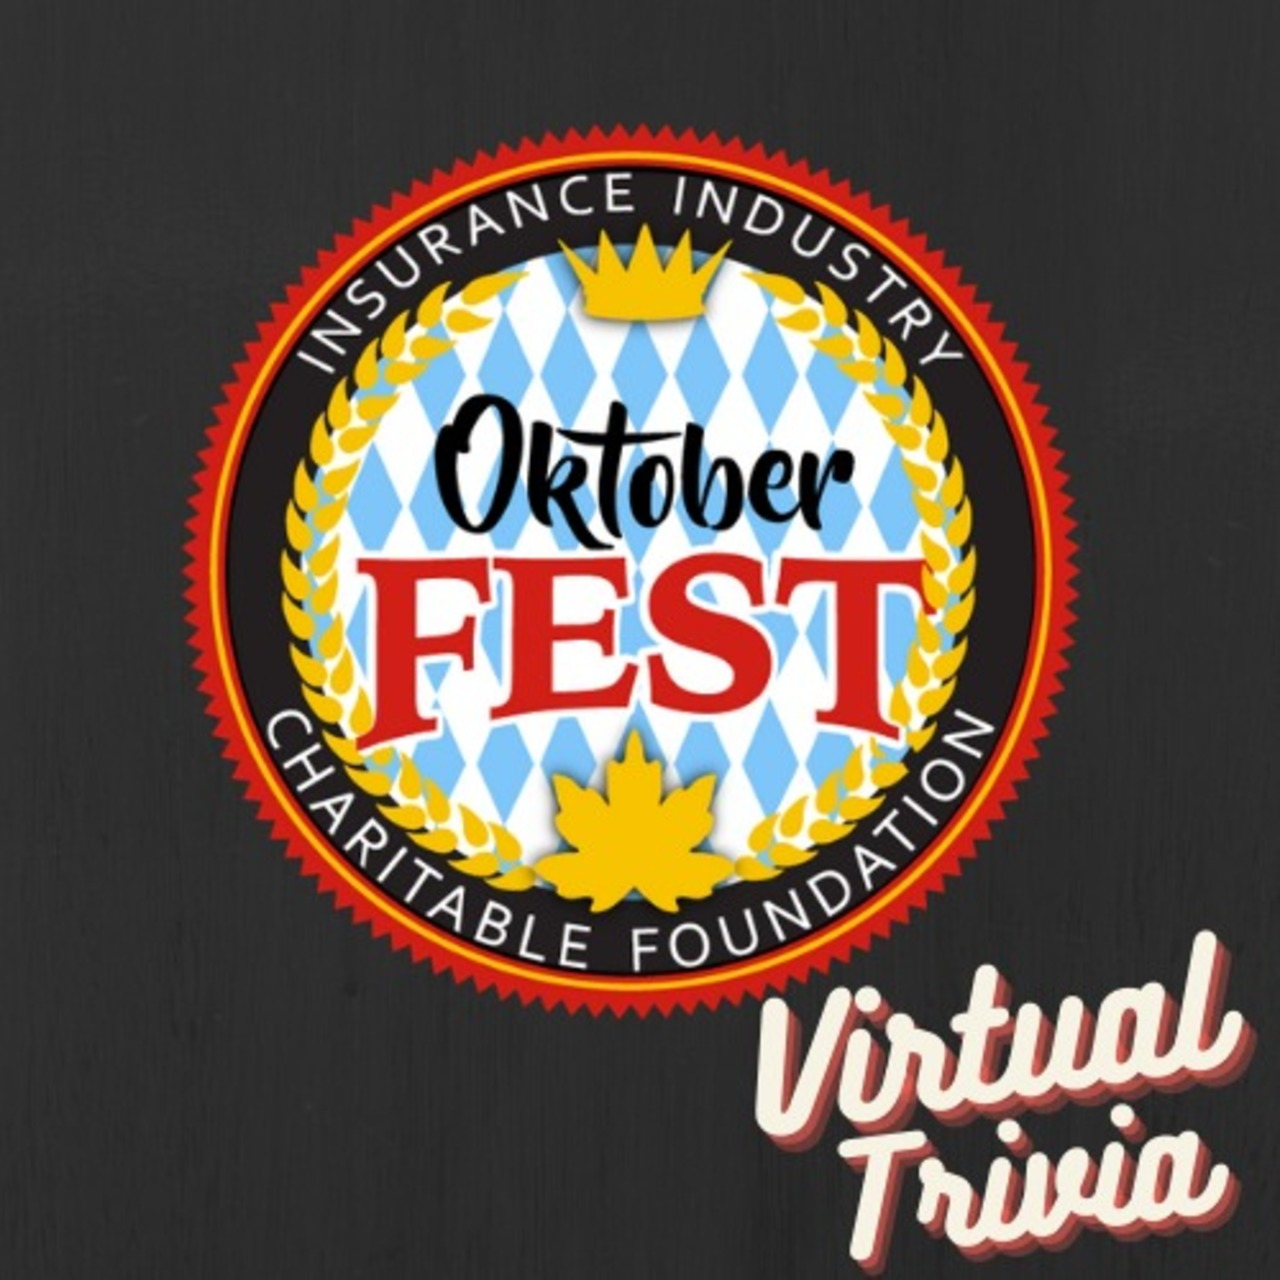 IICF Heartland Chapter Oktoberfest VIRTUAL Trivia